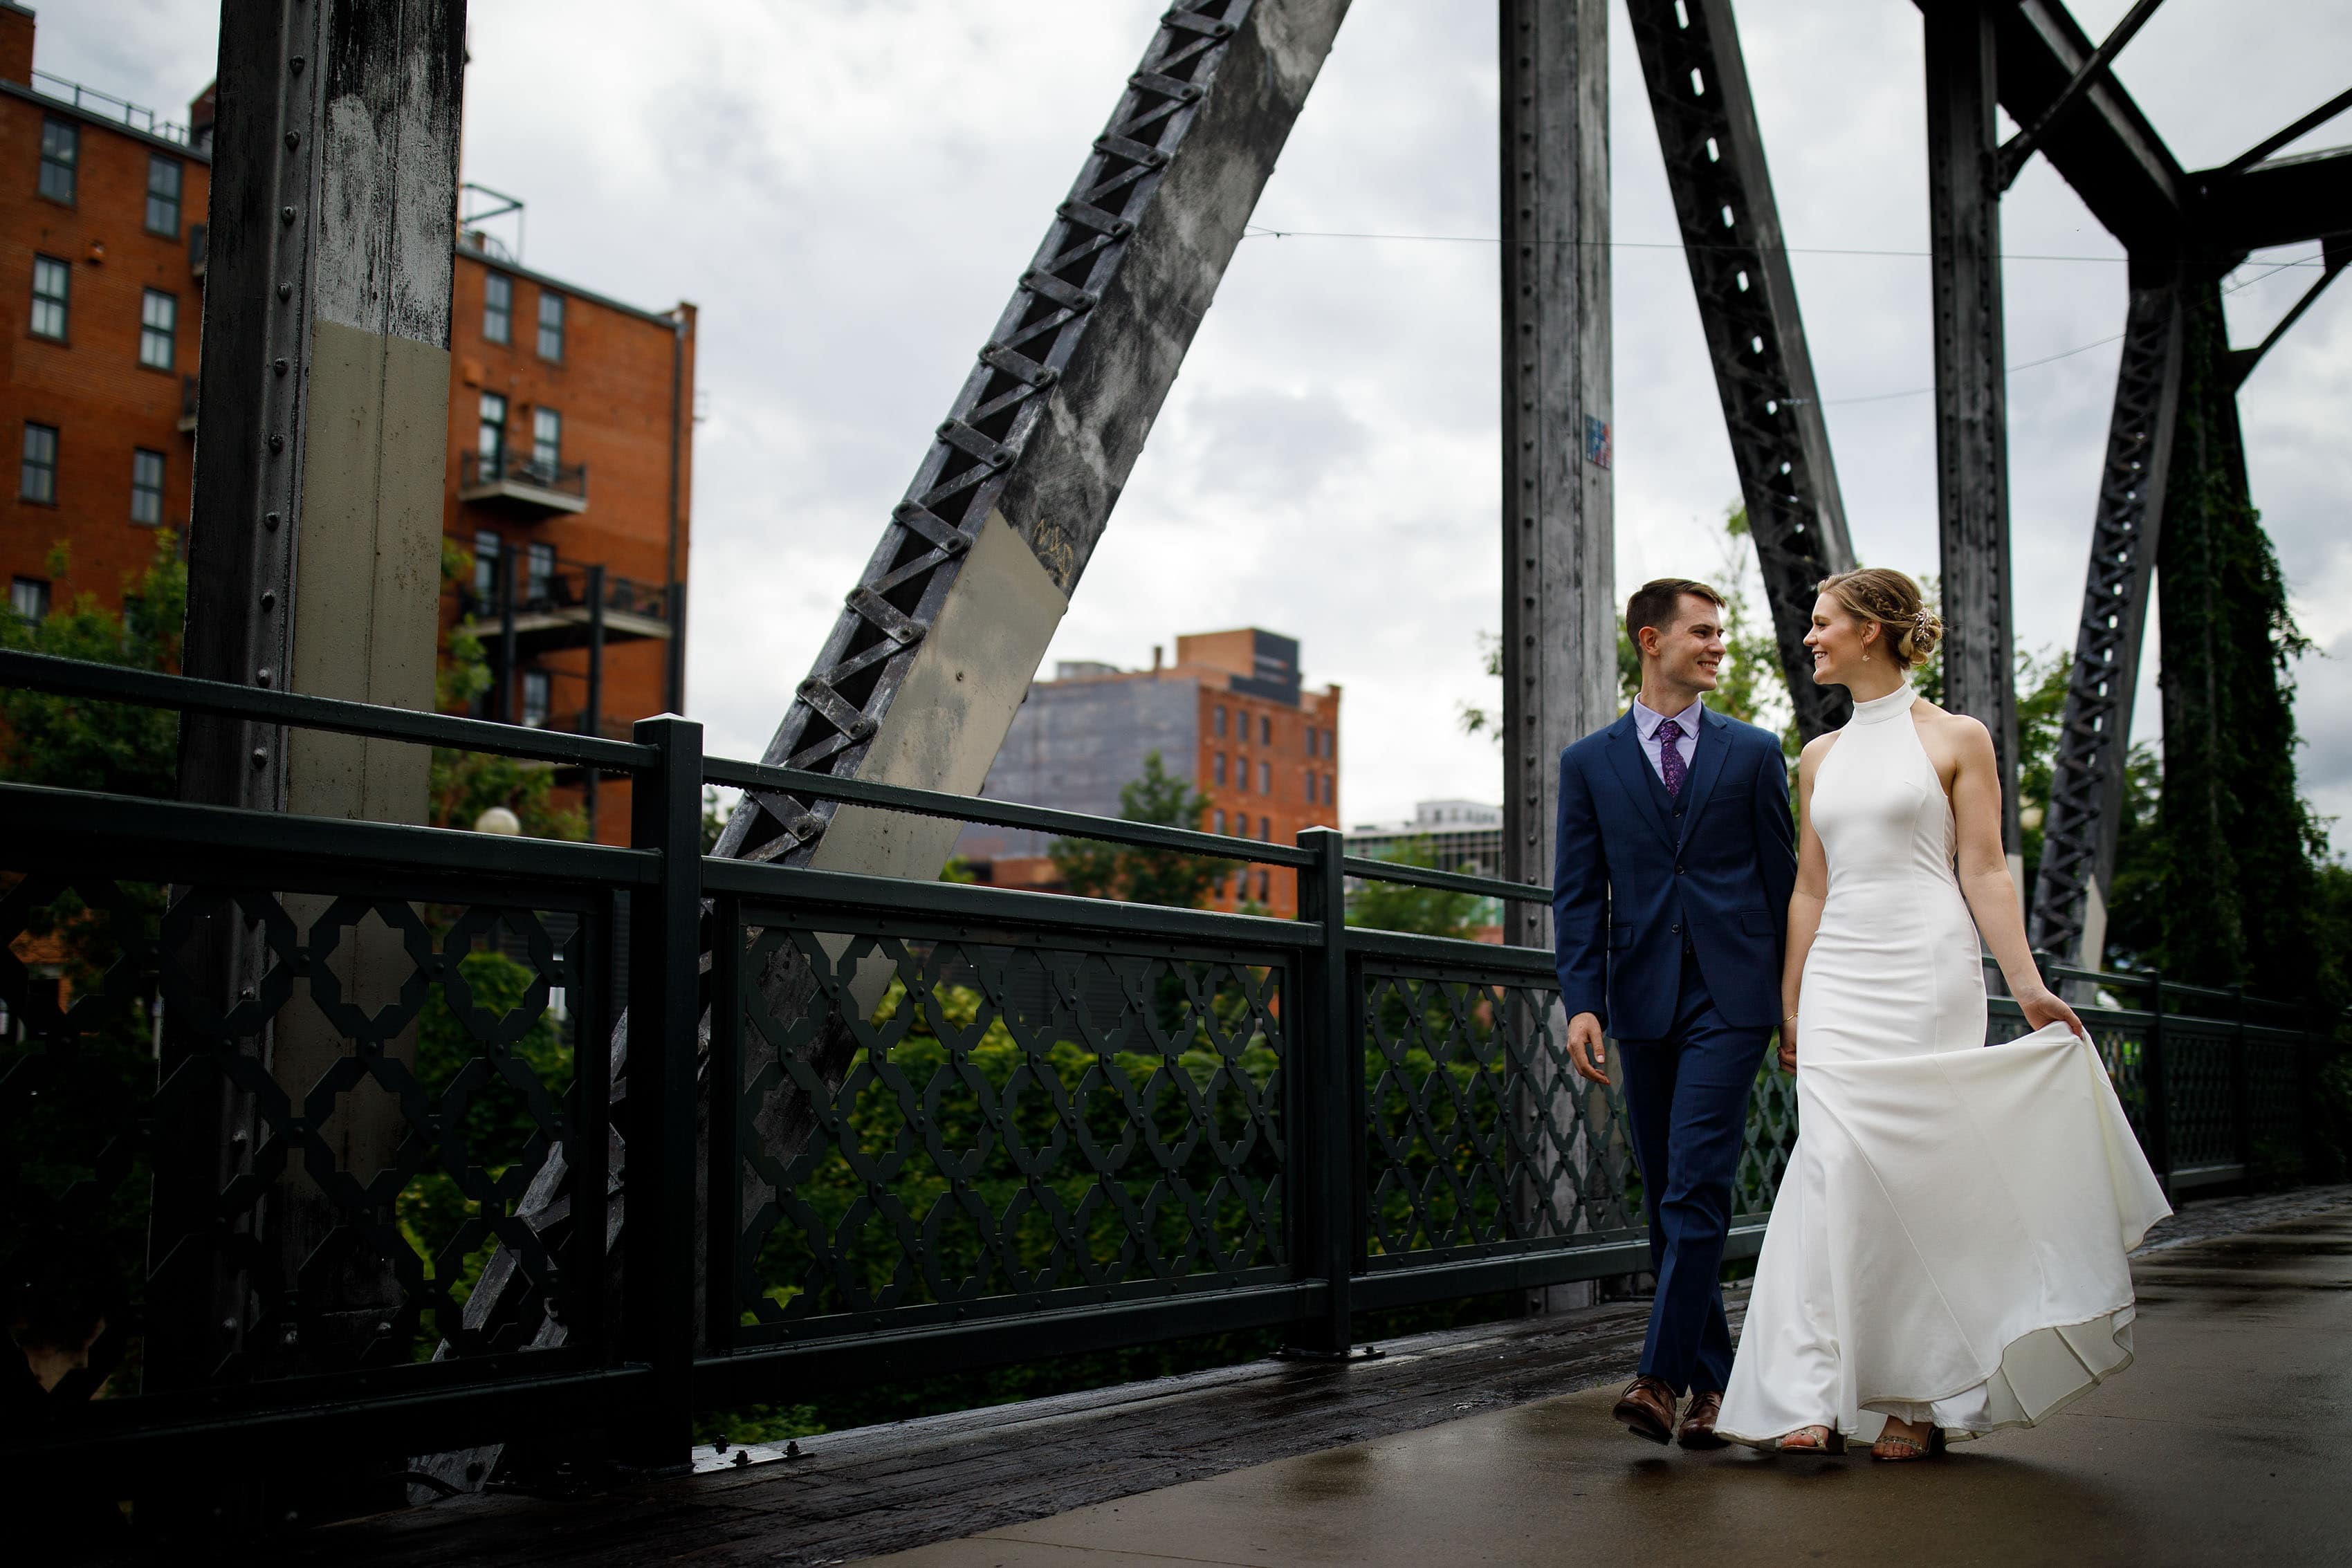 Newlyweds walk together on the Wynkoop Street Bridge in Denver's LoDo neighborhood